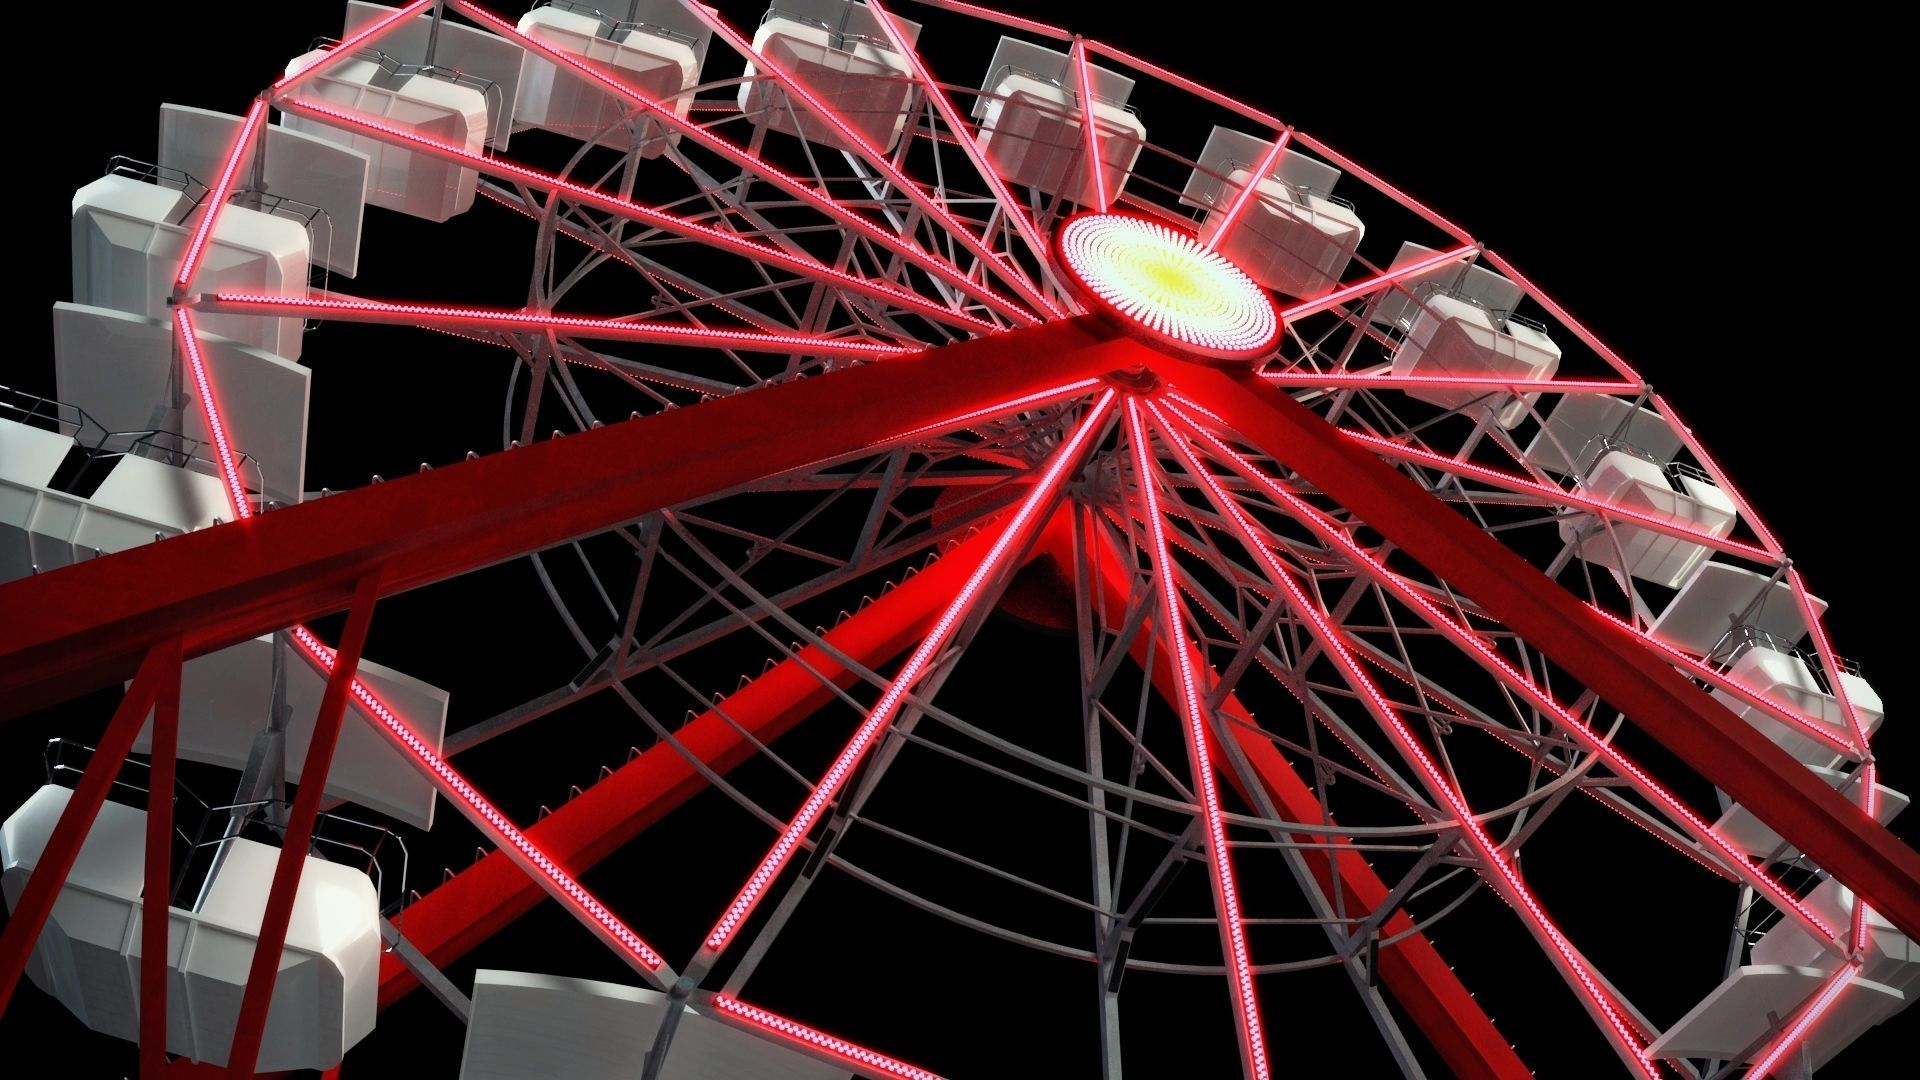 FERRIS WHEEL ANIMATED